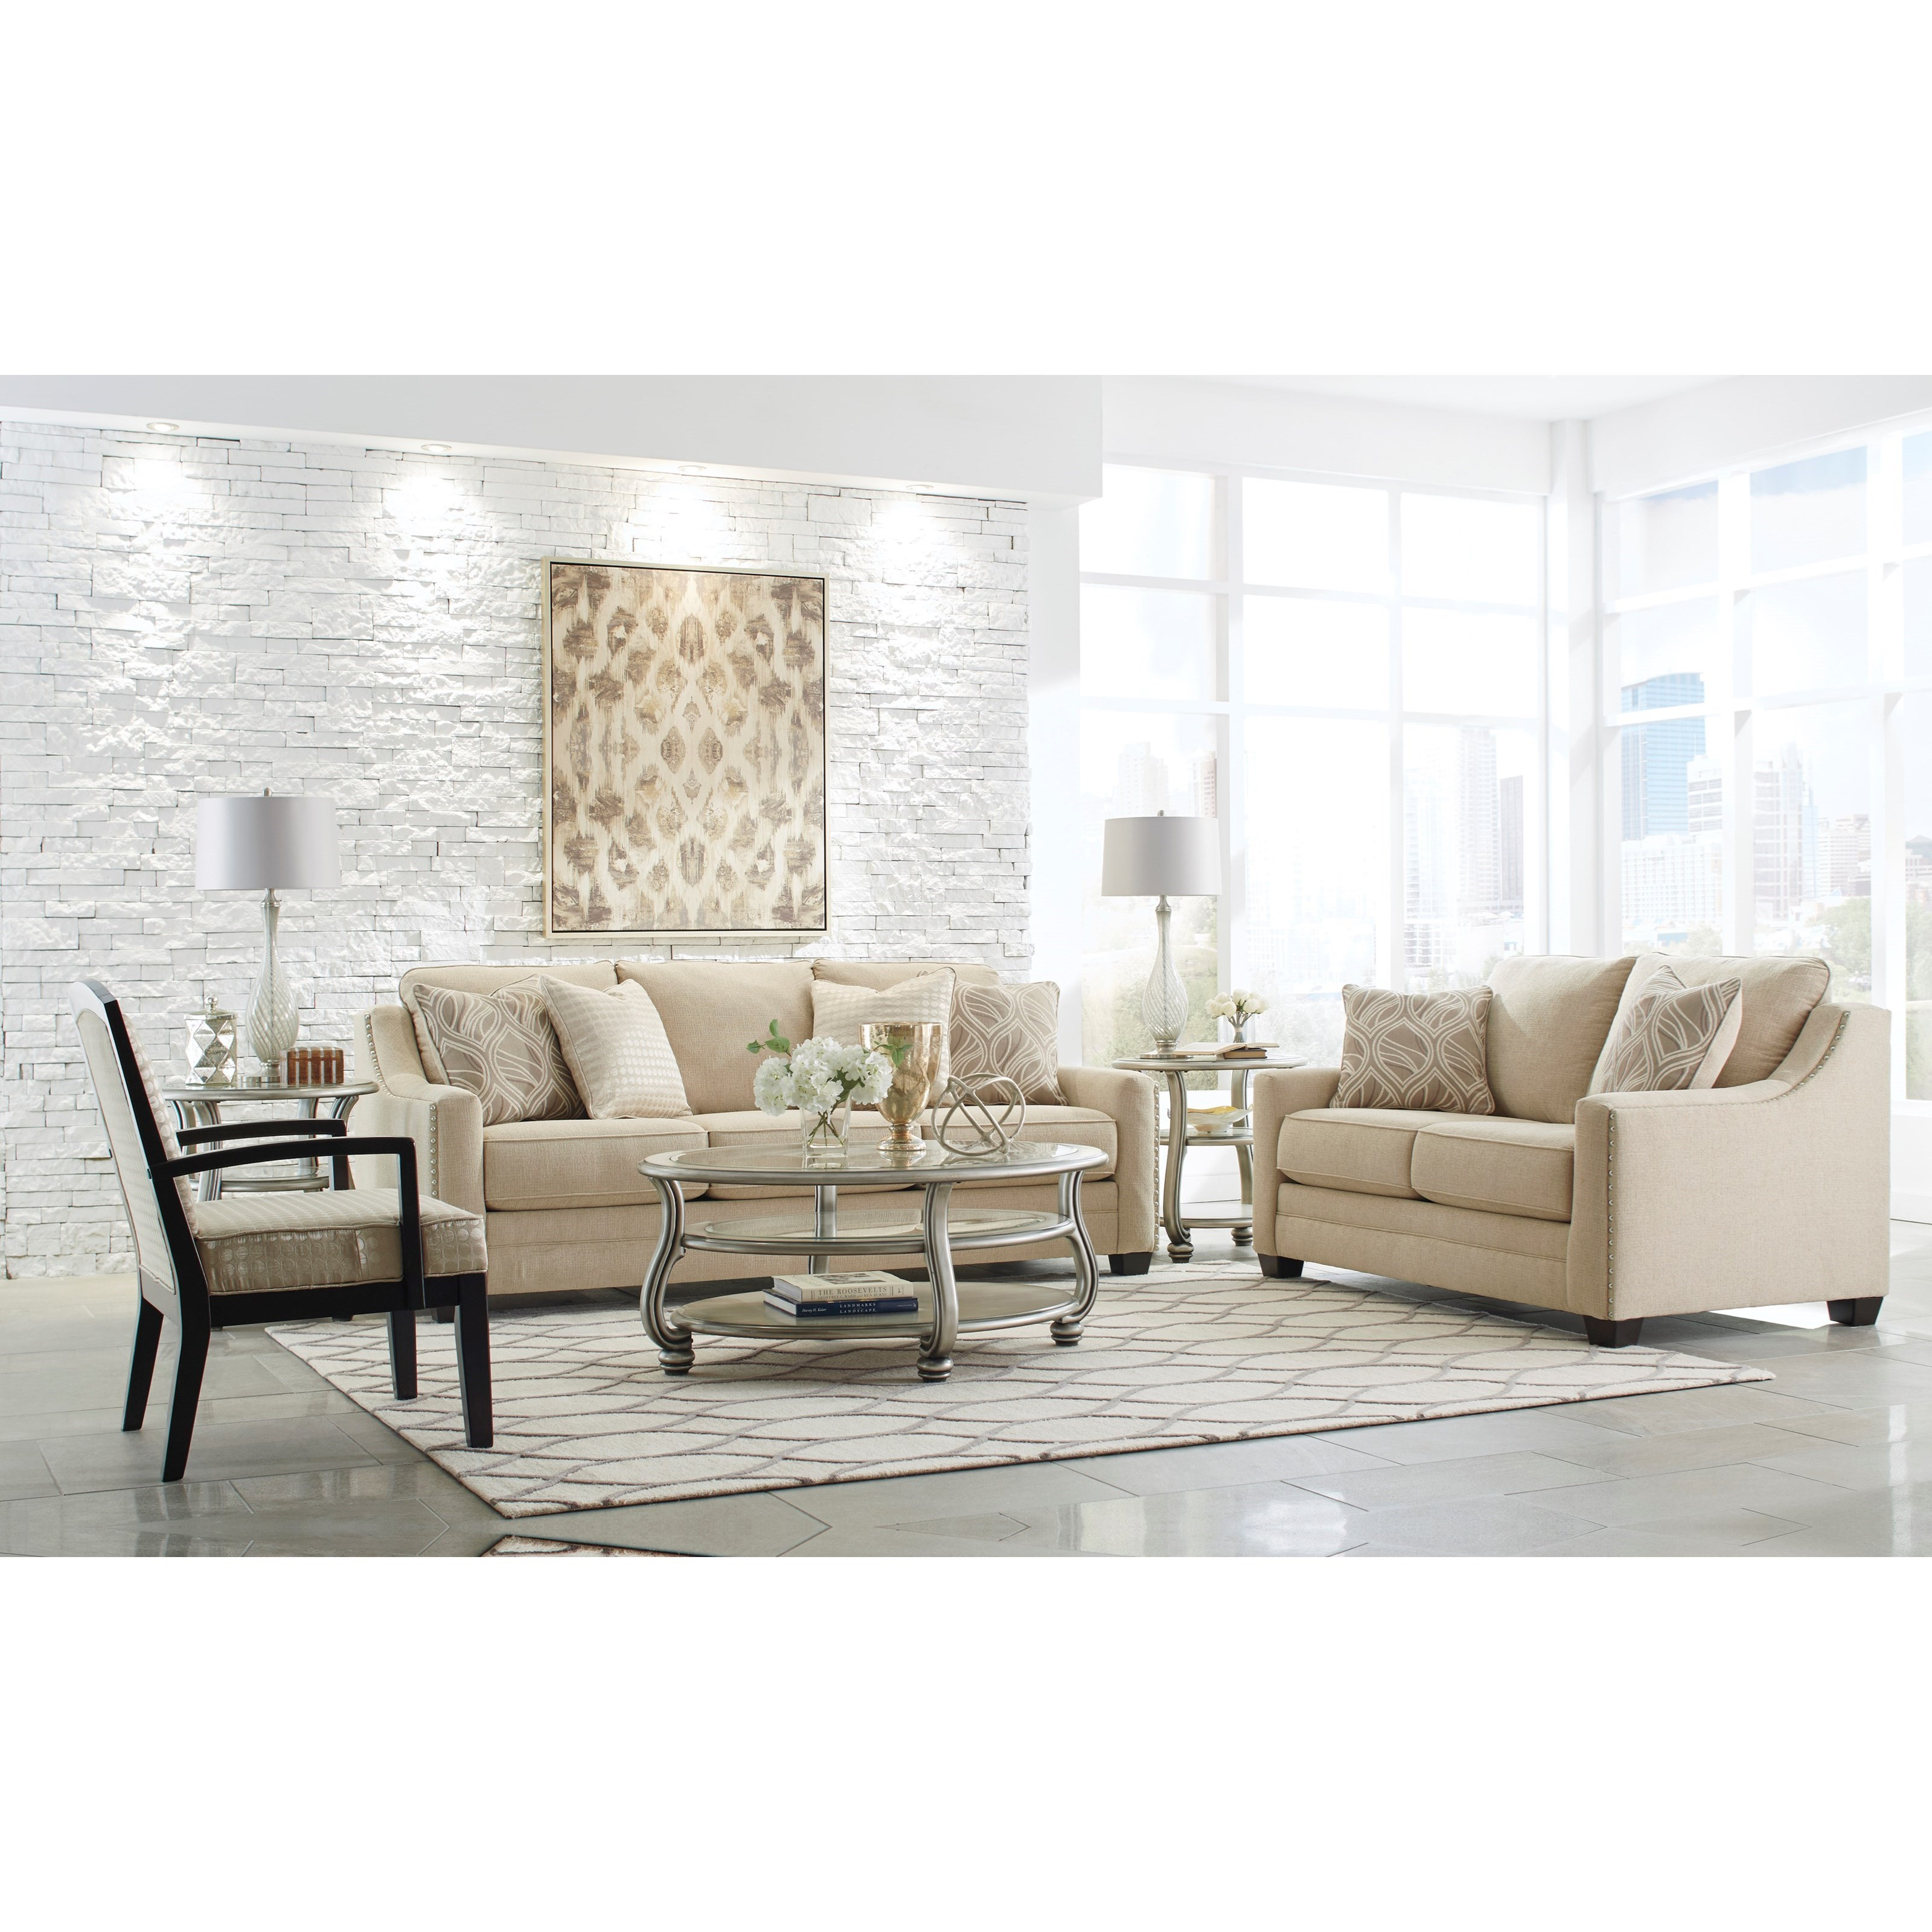 Benchcraft Mauricio Stationary Living Room Group Value